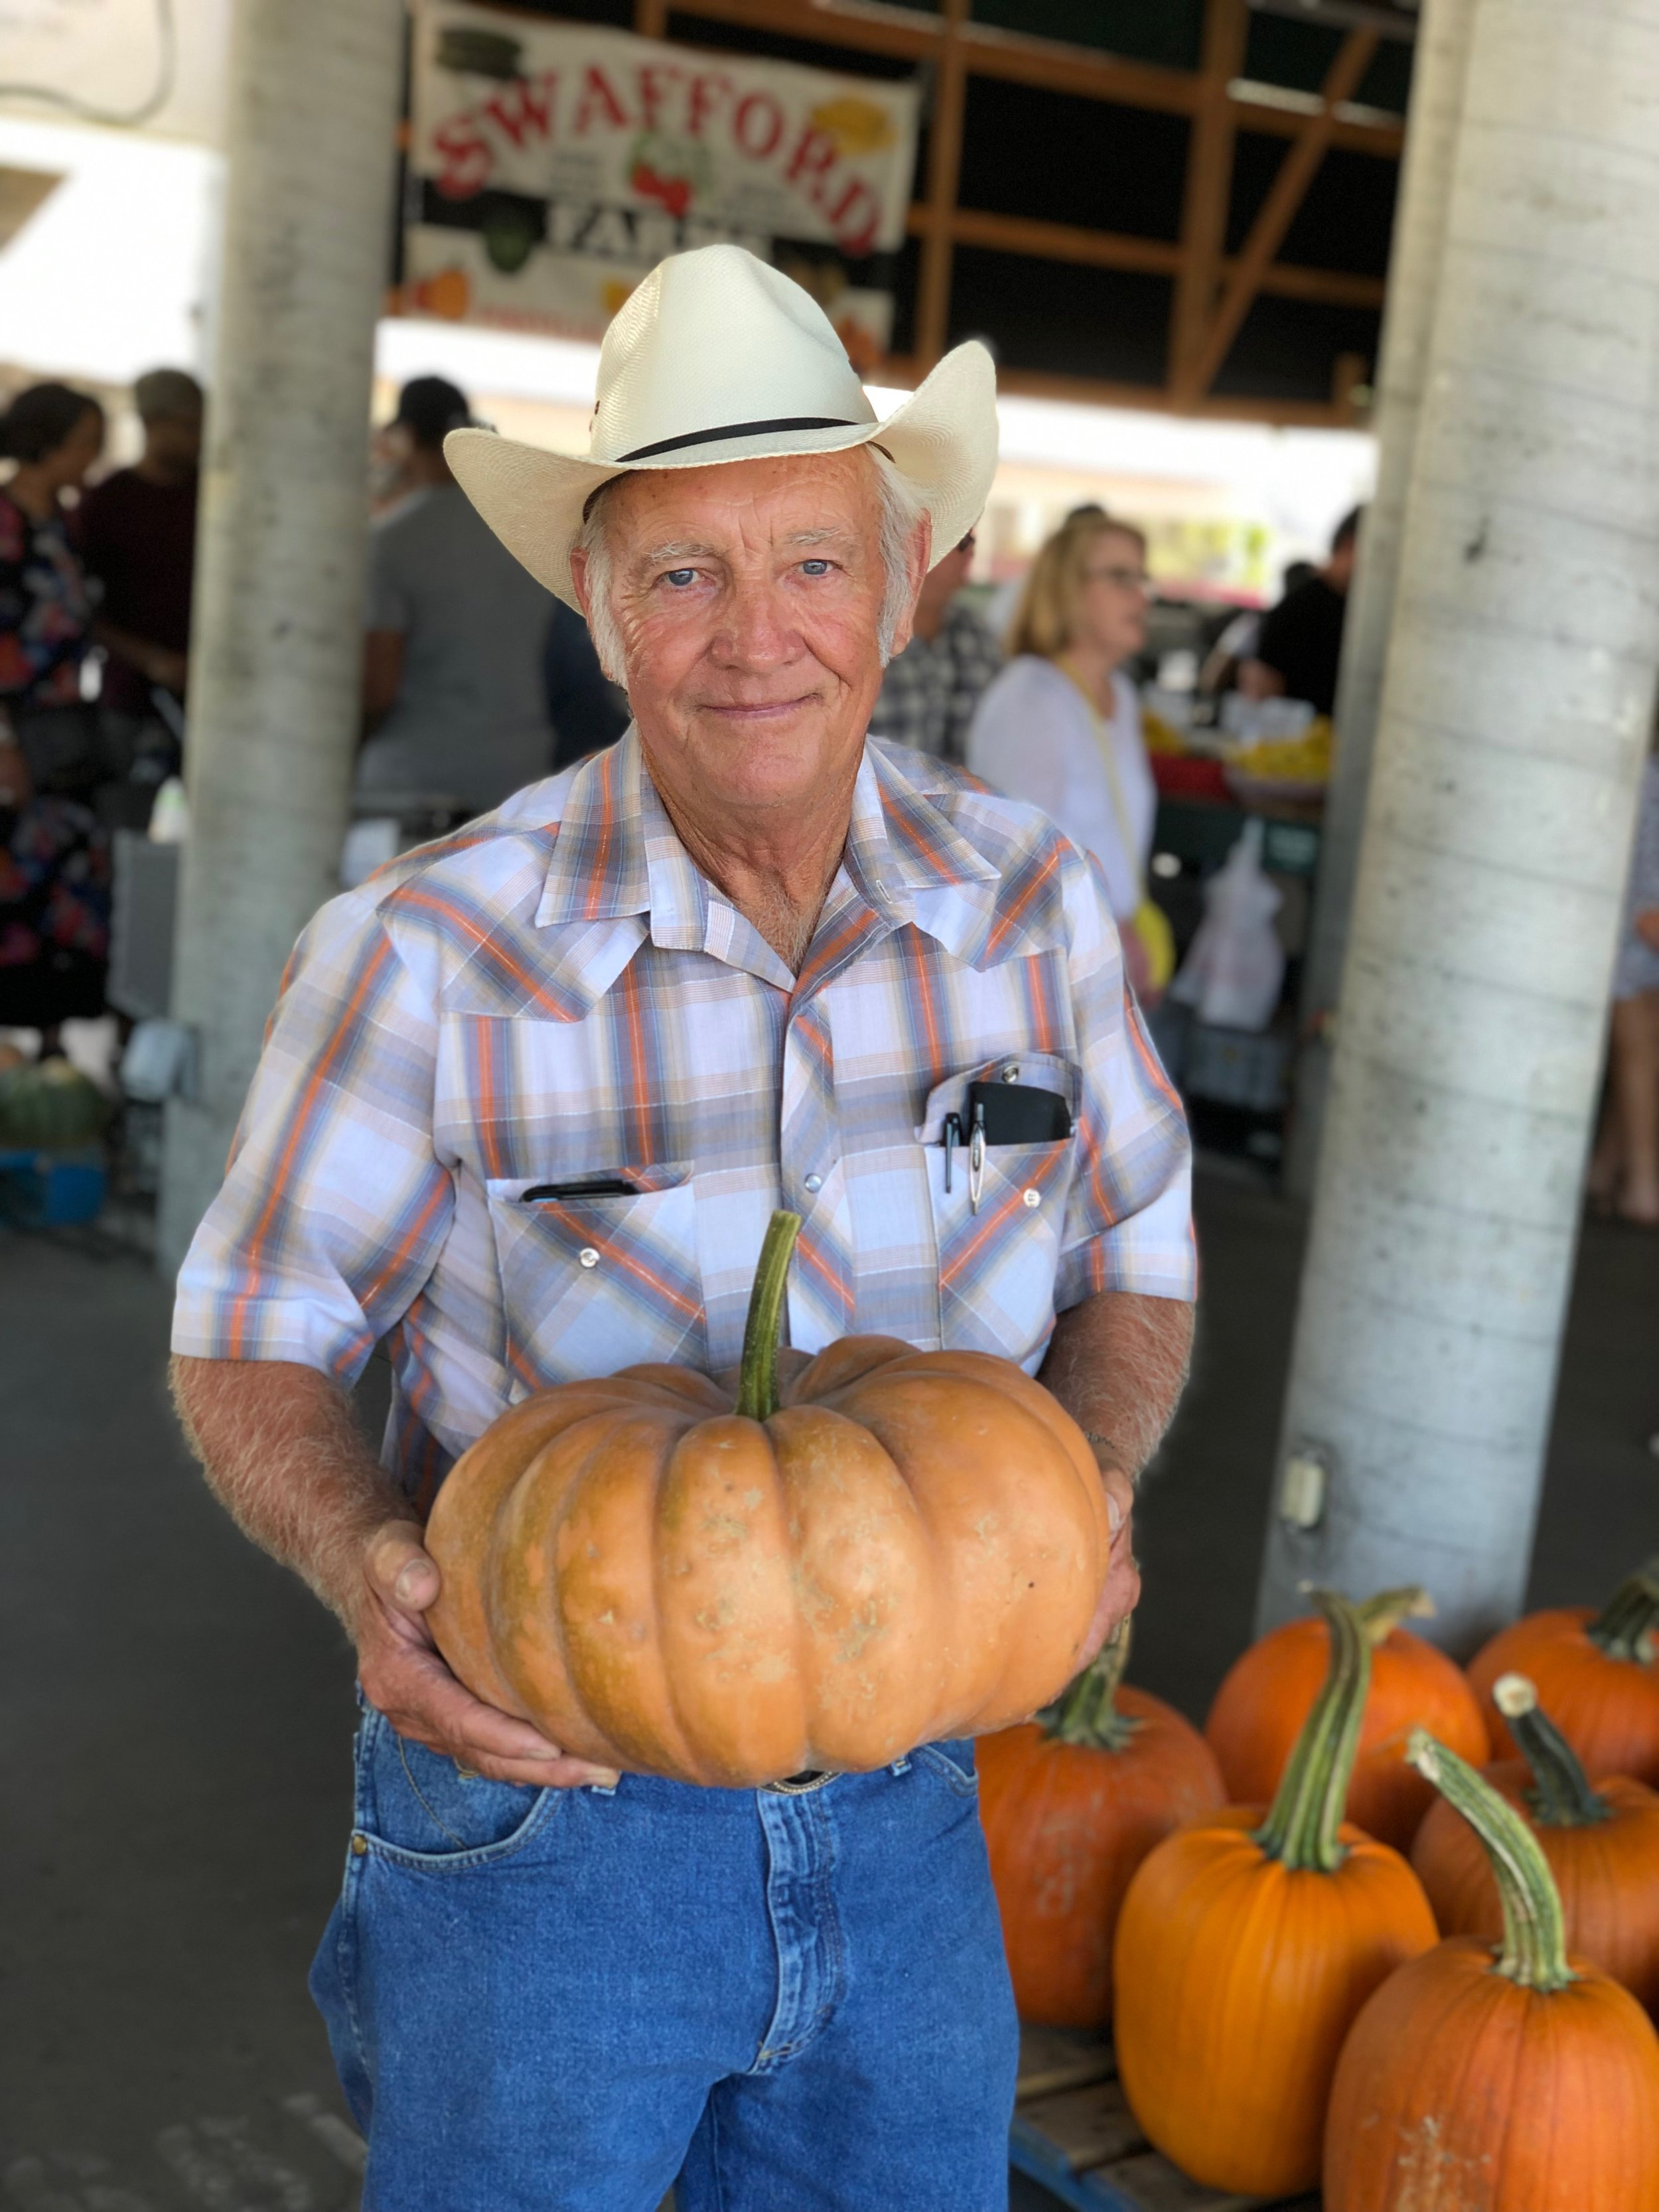 Grady Swafford of Swafford Farms has been bringing pumpkins to NFM for some 30 years. This Saturday's Pumpkinfest will be your last chance to catch him — and his beautiful produce — until he returns with his crew to the Market next spring.